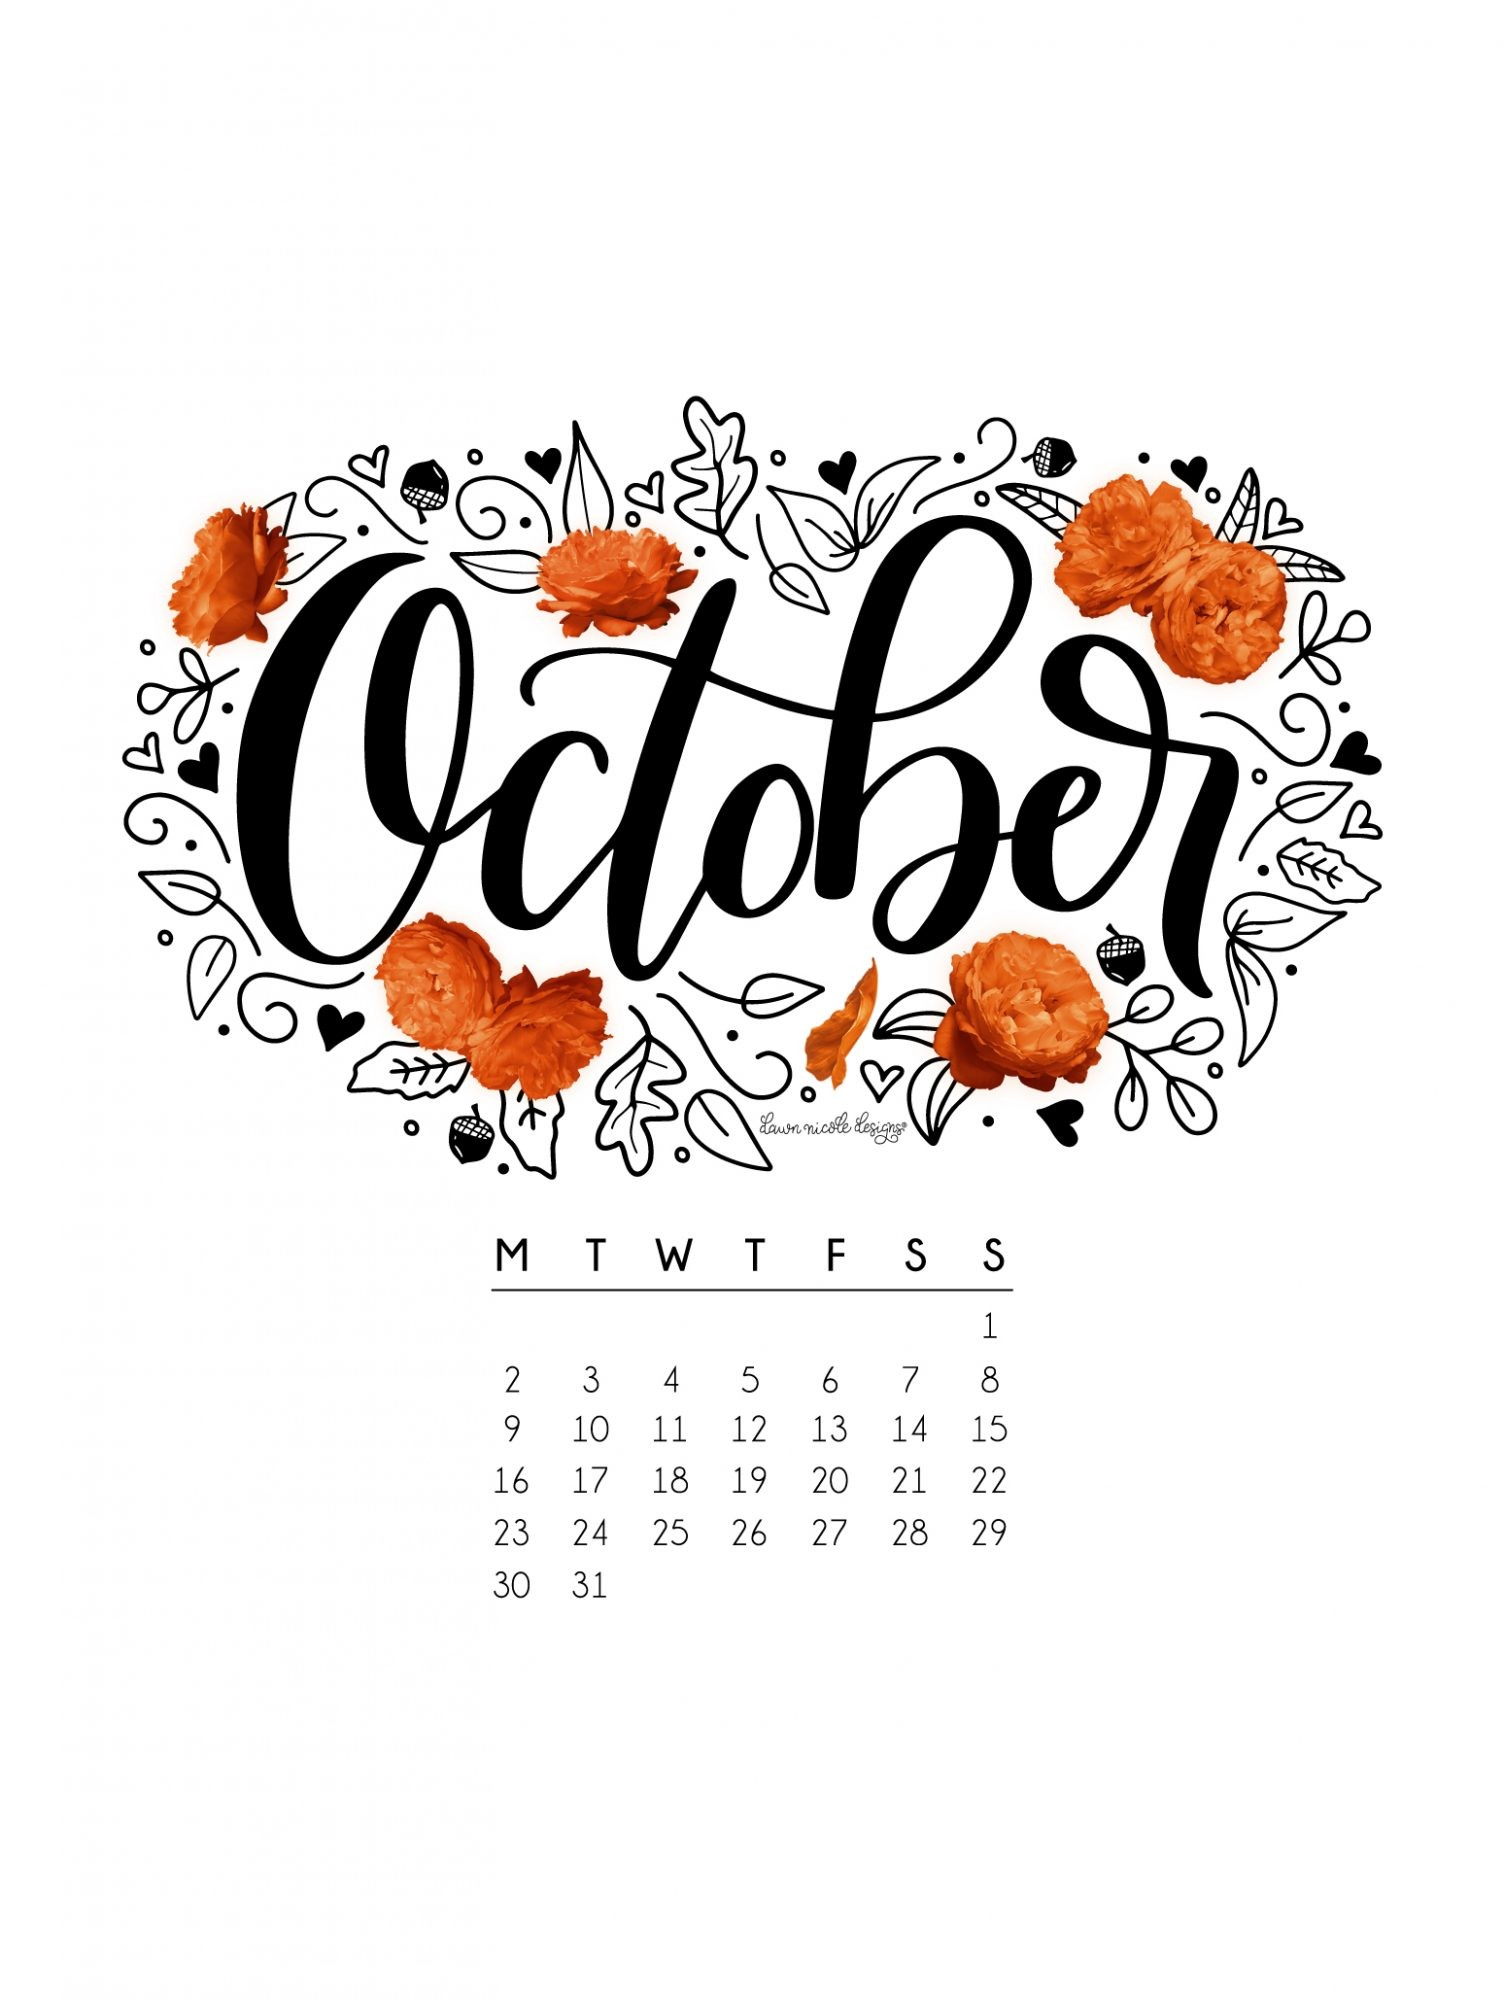 Wallpapers with Calendar 2018 57 images 1504x2000